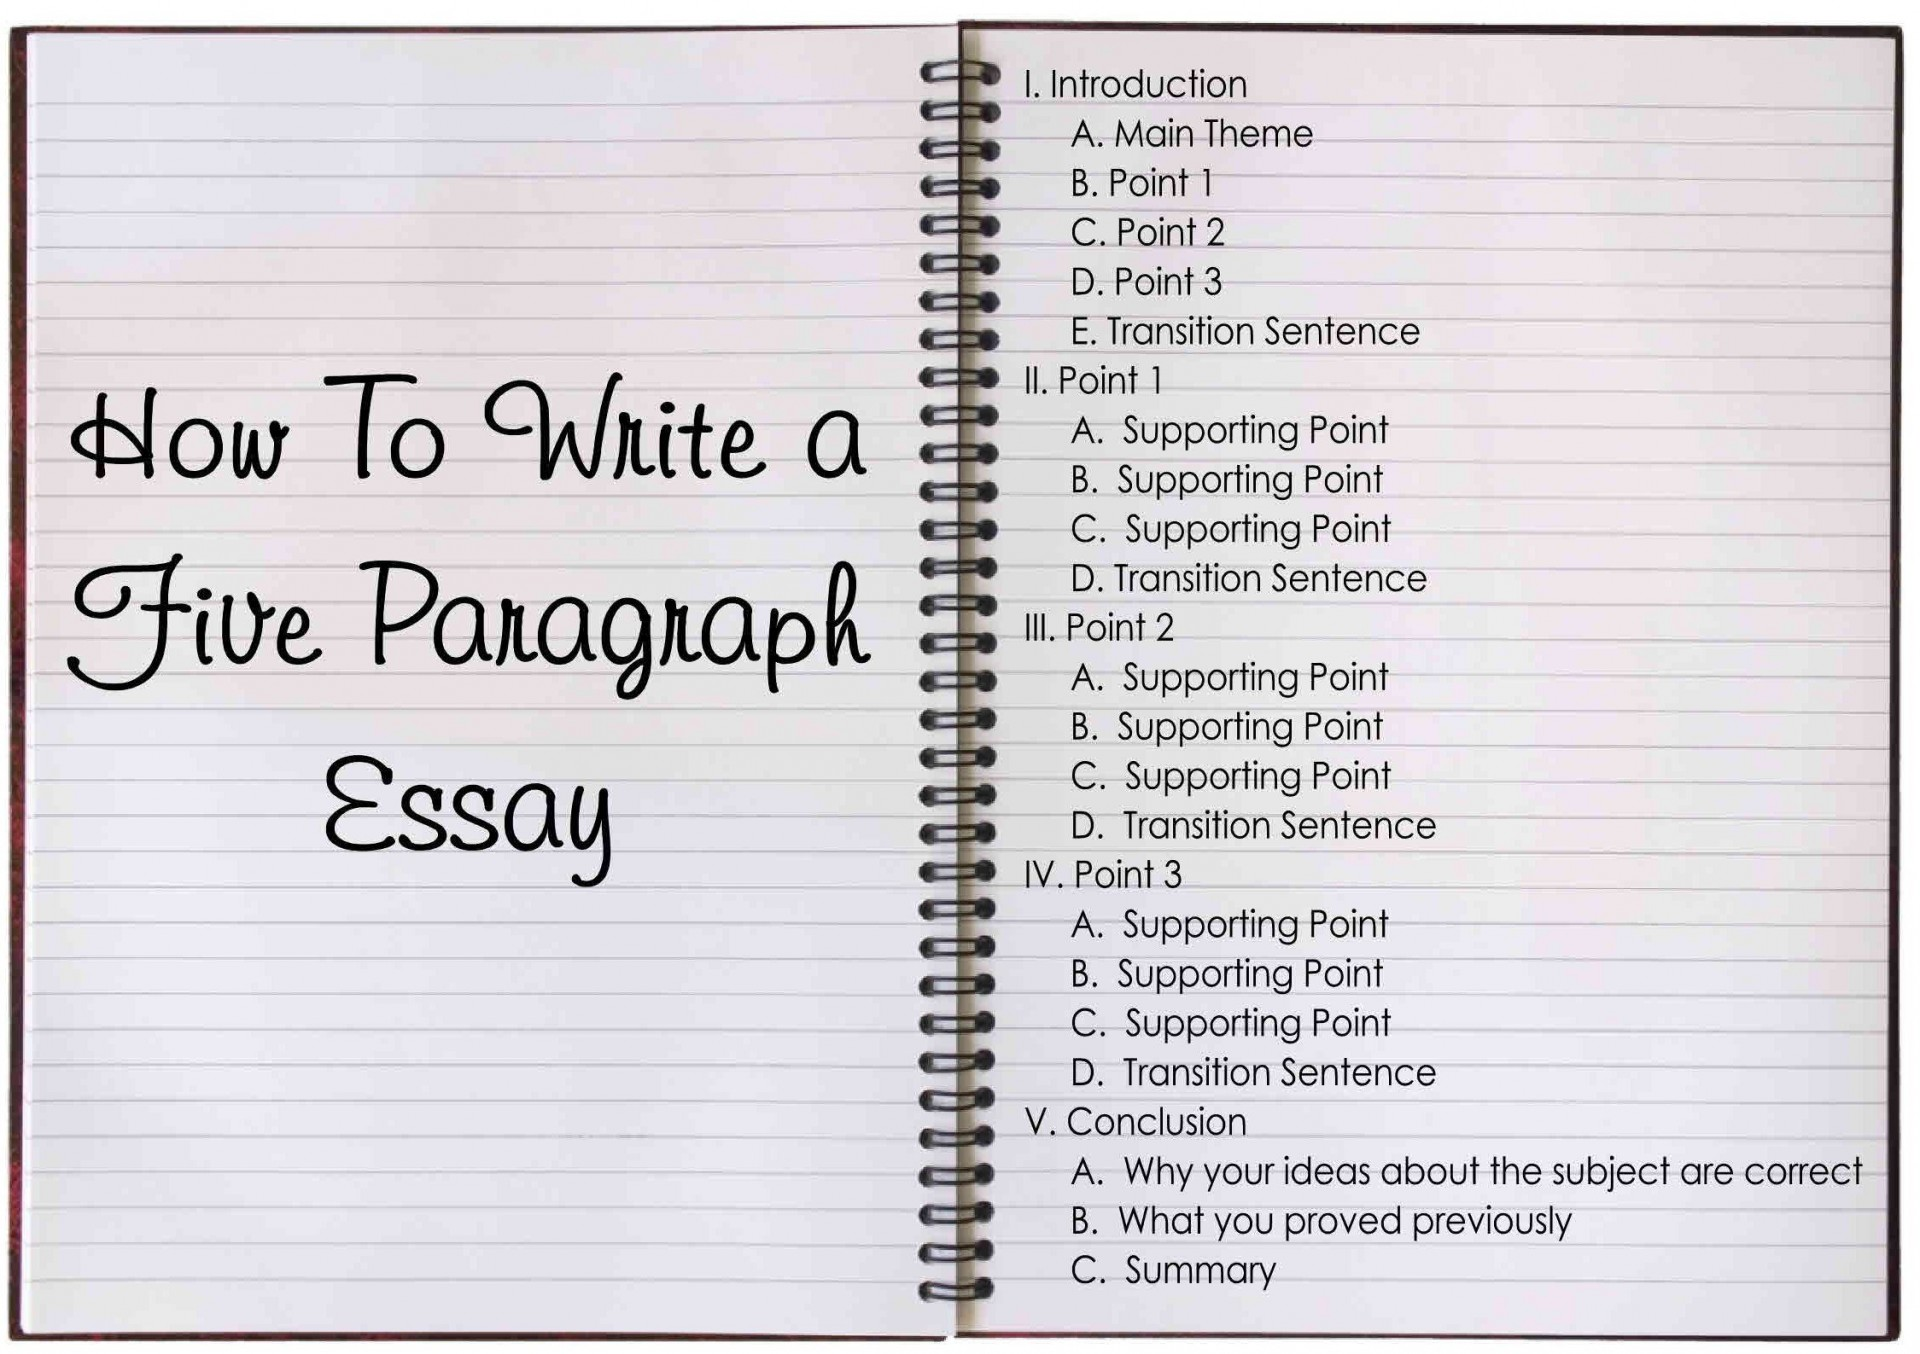 022 Issues To Write An Essay About Awesome Interesting Topics On For High School Social 1920